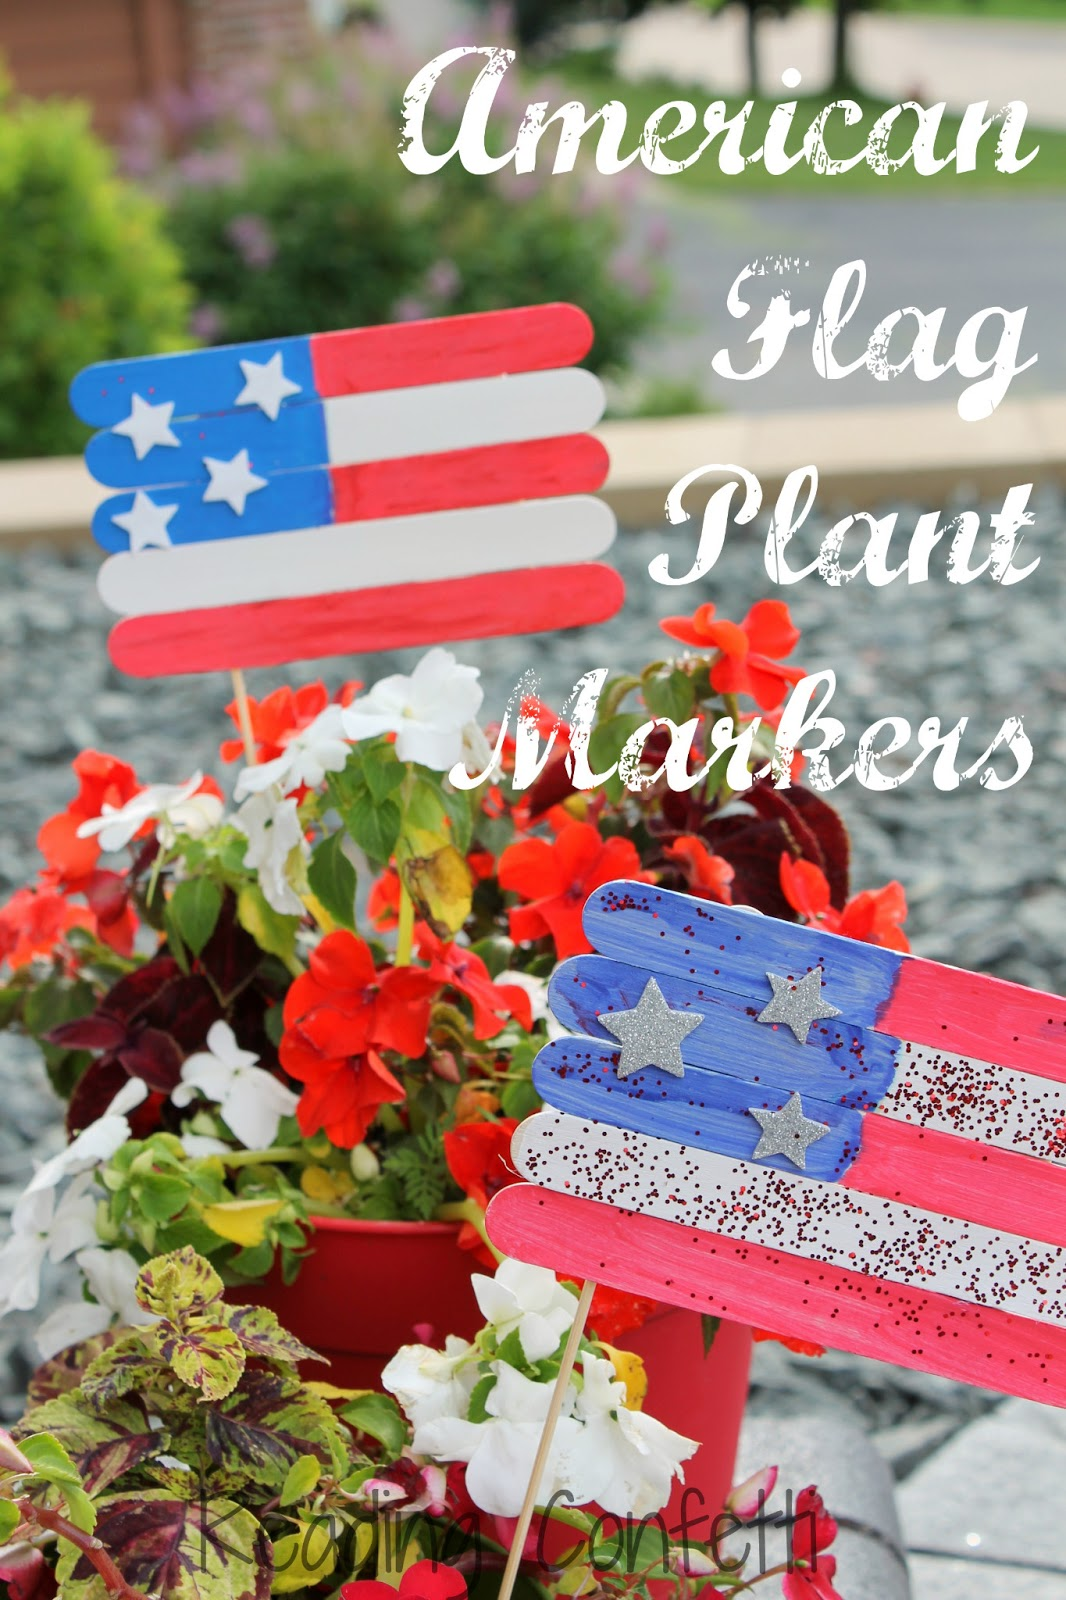 pictures the en american image flag free view garden domain photo public stock